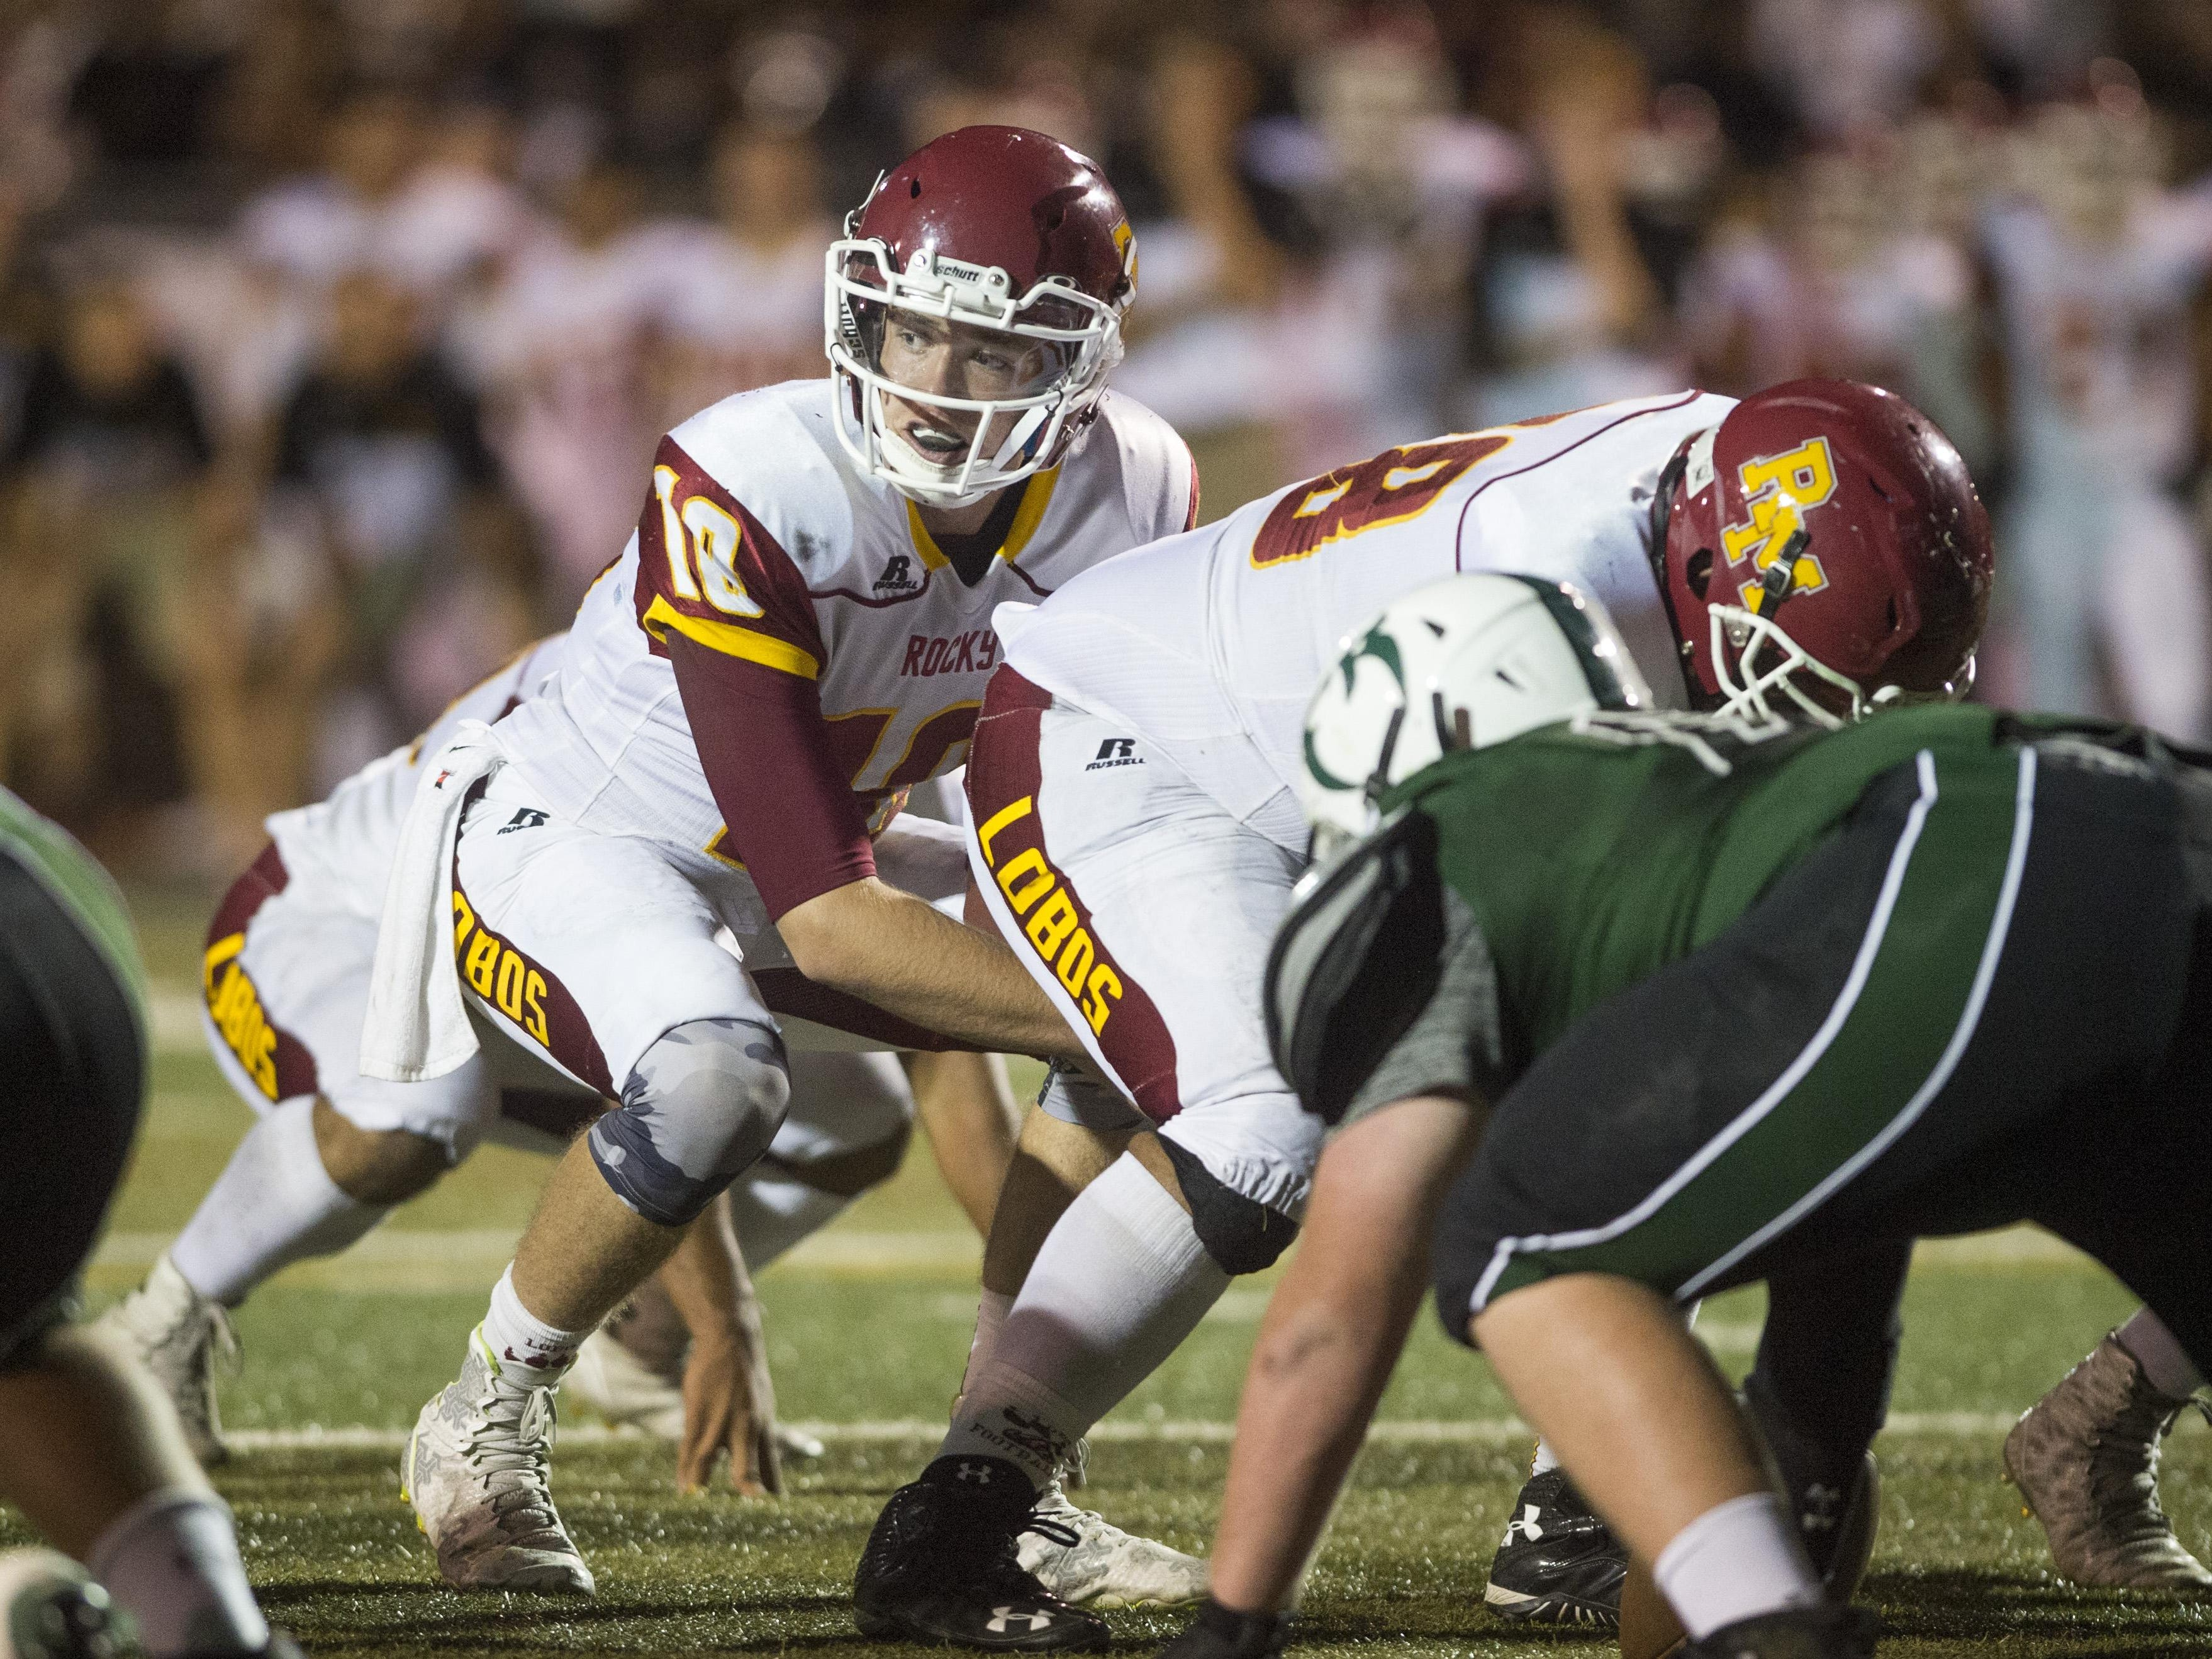 Rocky Mountain High School quarterback Tyler Hyland lines up for a play near the endzone in a game against Fossil Ridge Friday. The Lobos won 19-6.